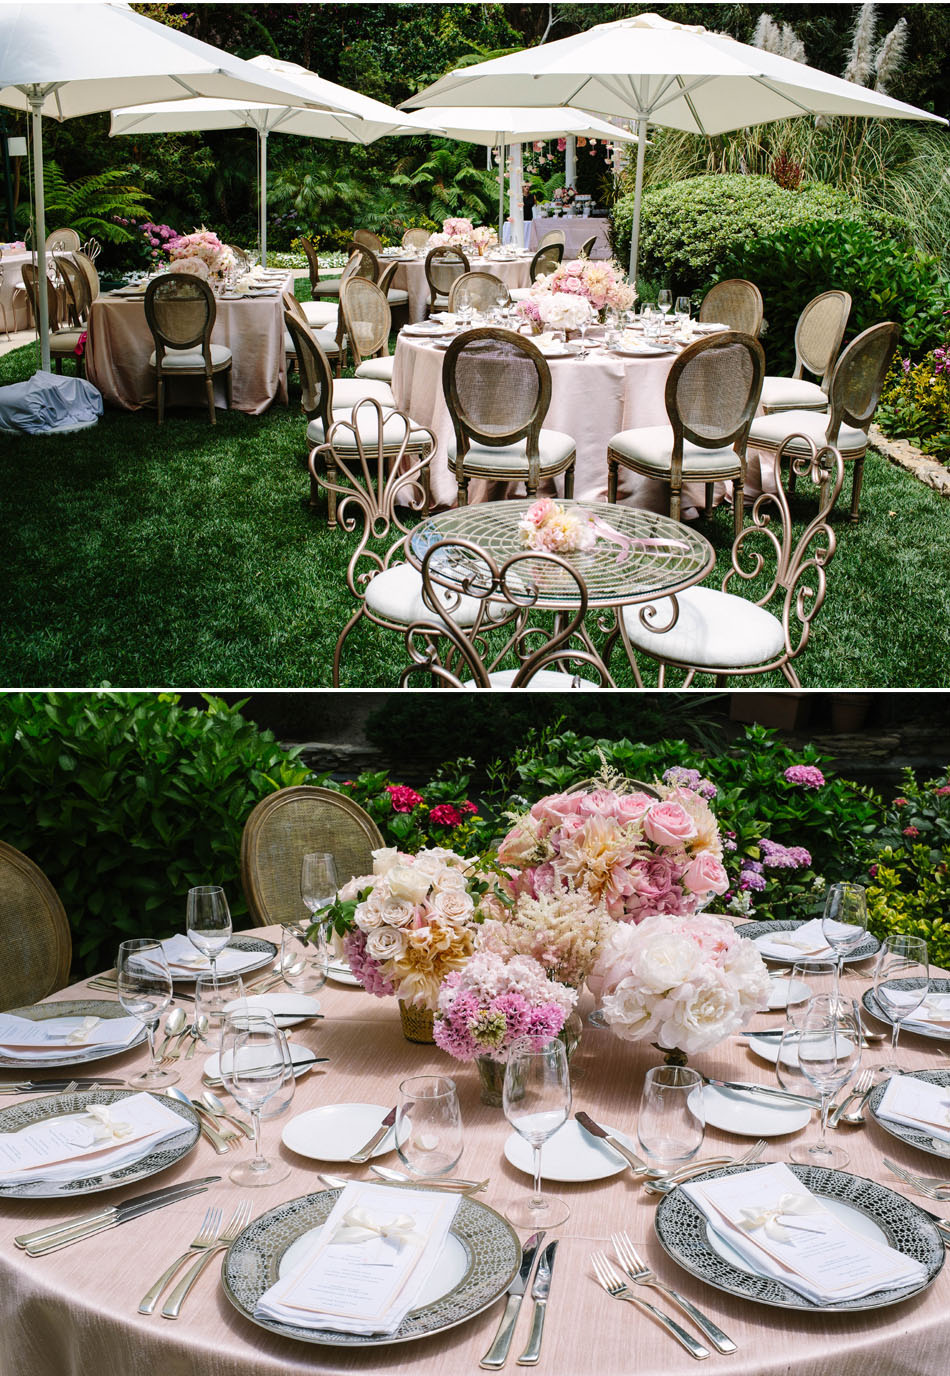 internationaleventcompany.com | International Event Company Los Angeles Wedding Planner and Designer | Baby Showers at Hotel Bel Air | Luxury Event Planners in Southern California _ (2).jpg